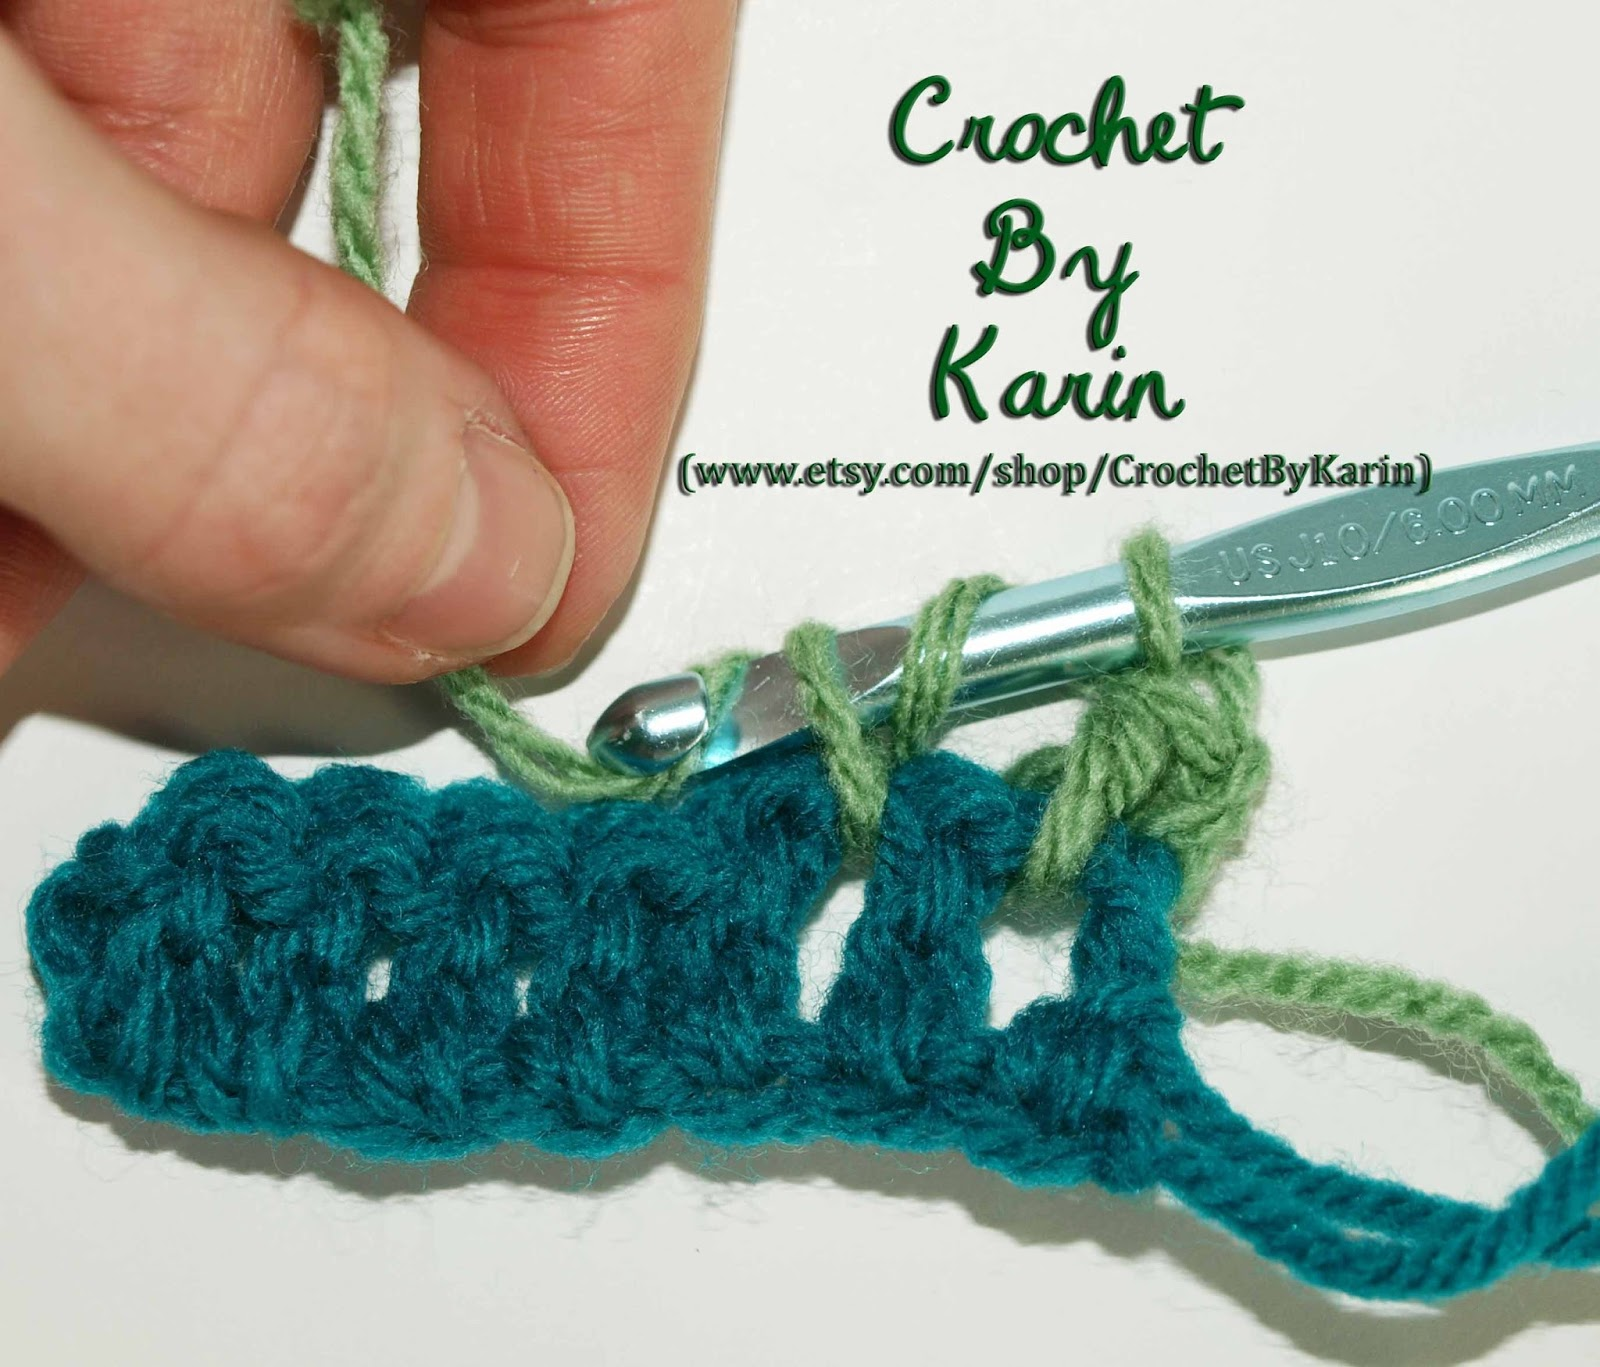 Crochet Stitches Nz : CrochetByKarin: Double Crochet Interlocking Stitch